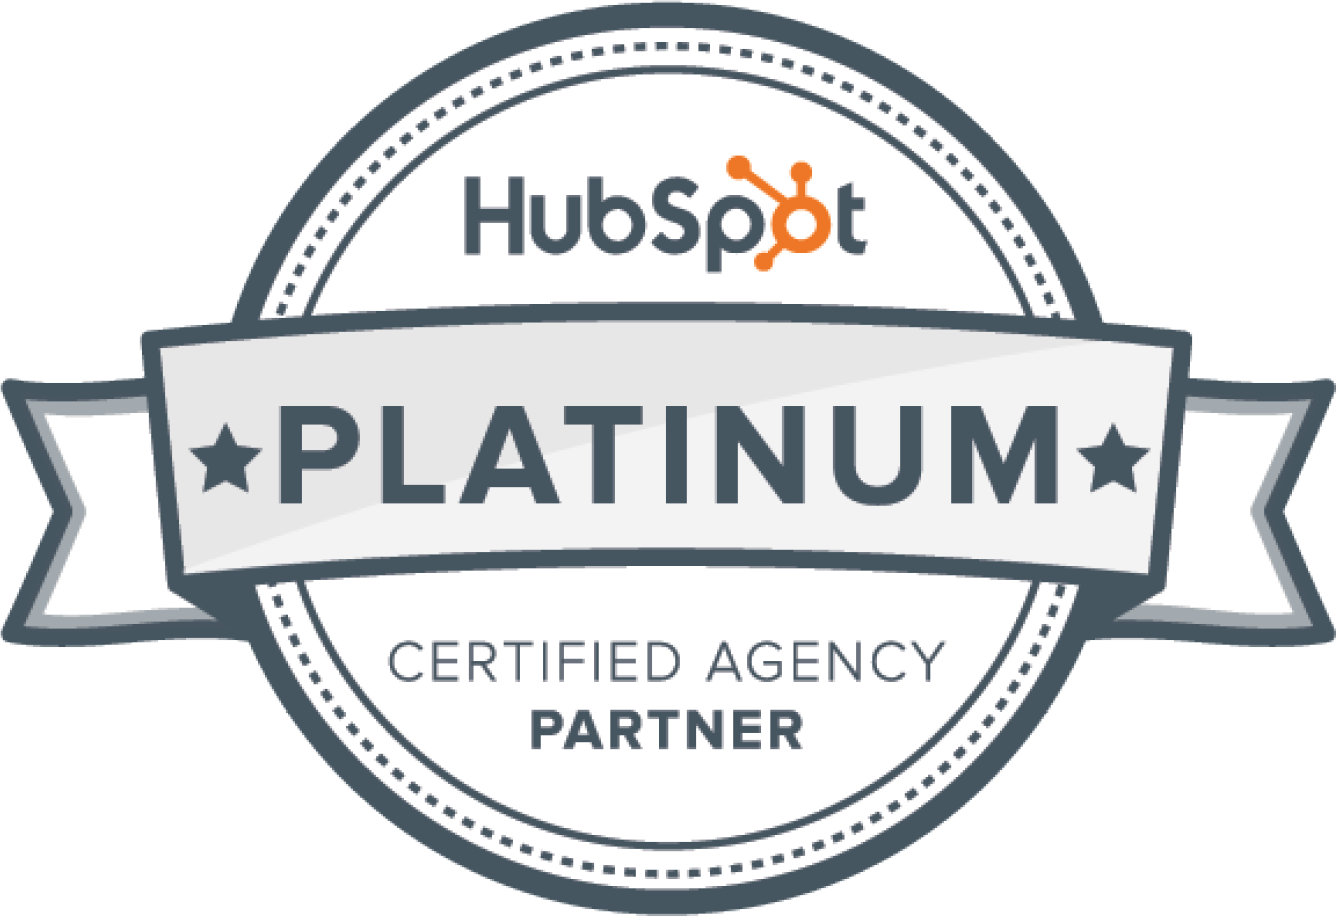 brand_movers-hubspot-platinum-partner